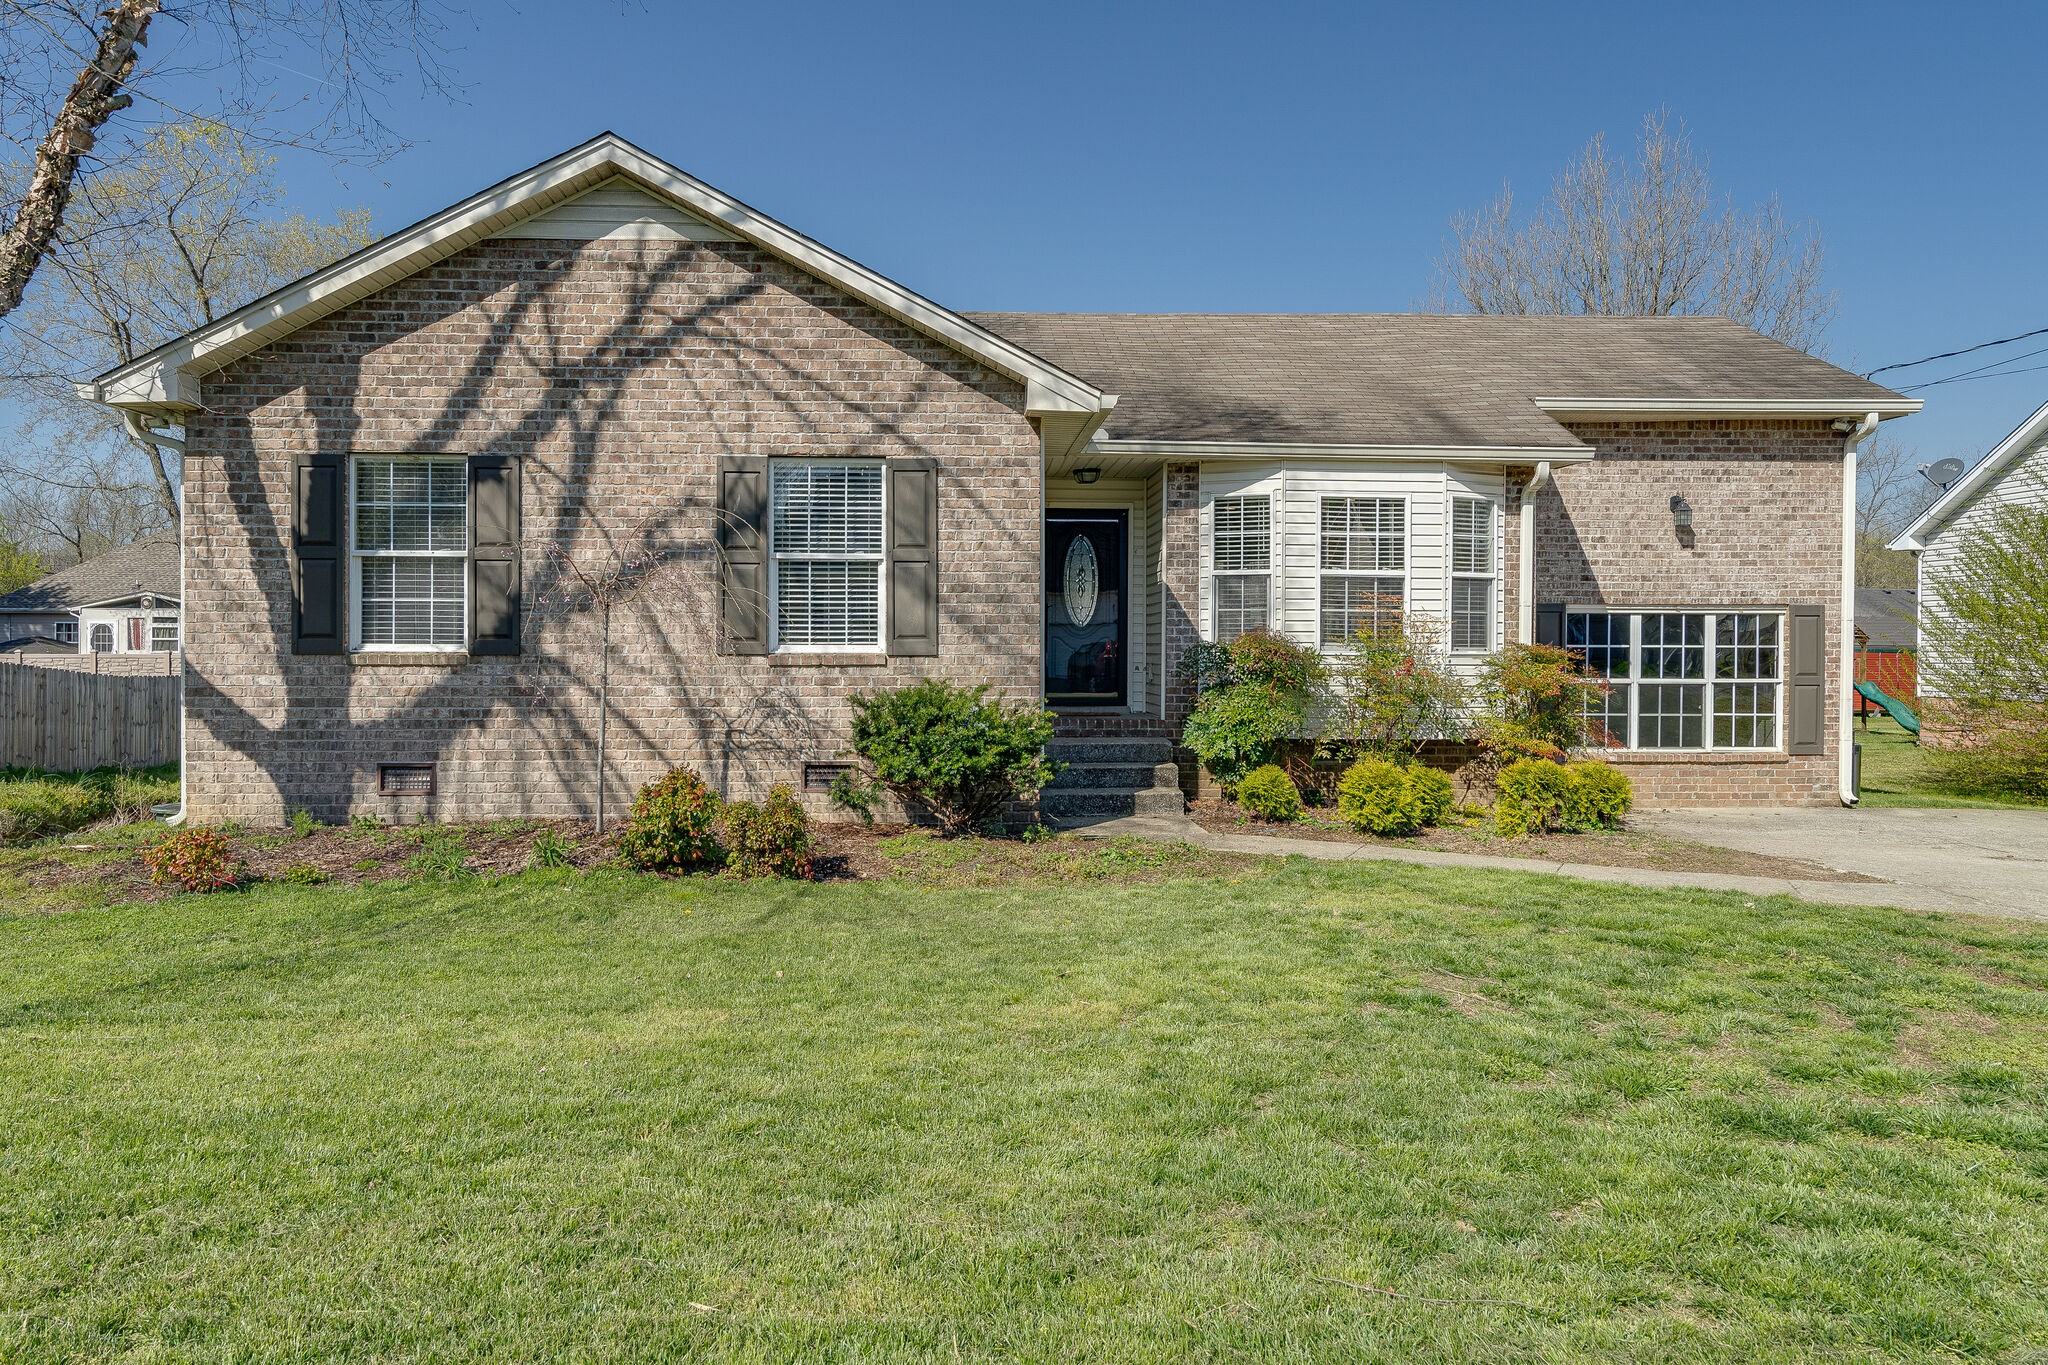 131 Jesse Brown Dr Property Photo - Goodlettsville, TN real estate listing